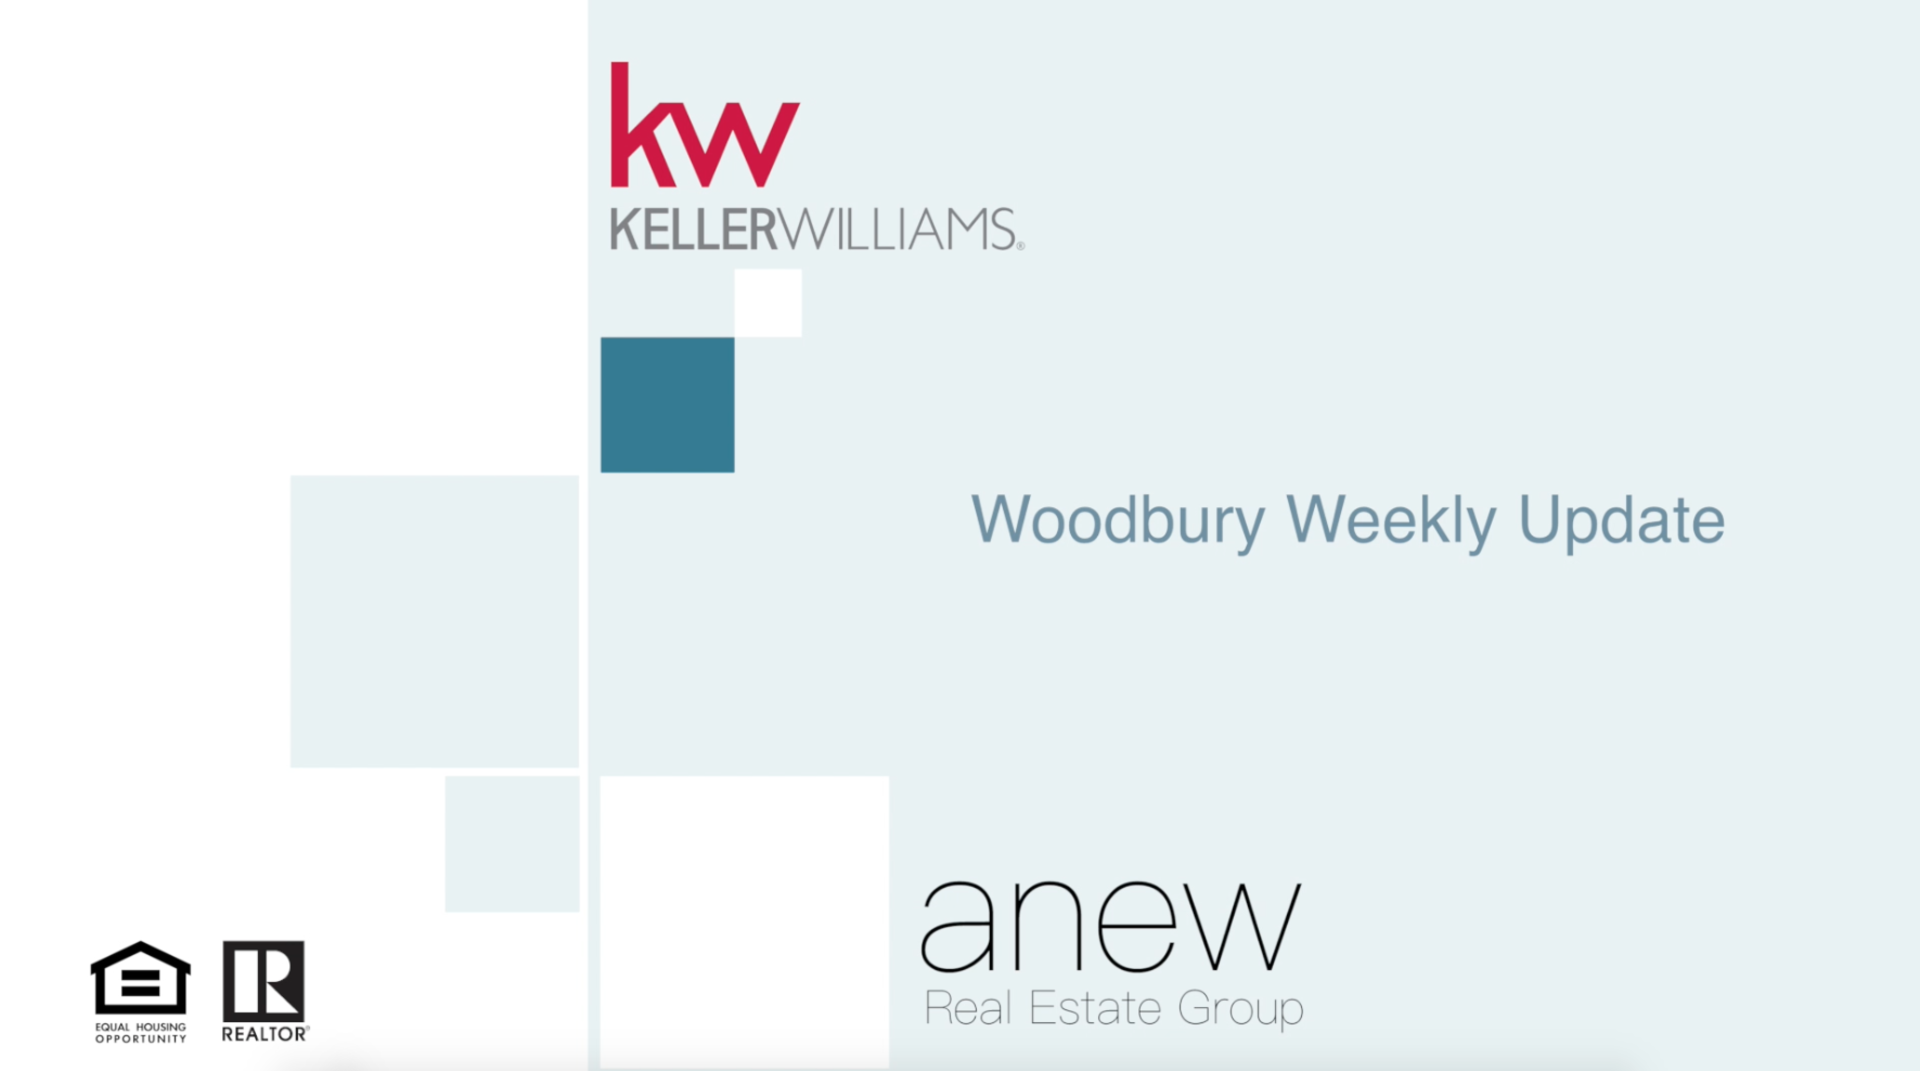 Woodbury Weekly Update for July 2nd, 2018.